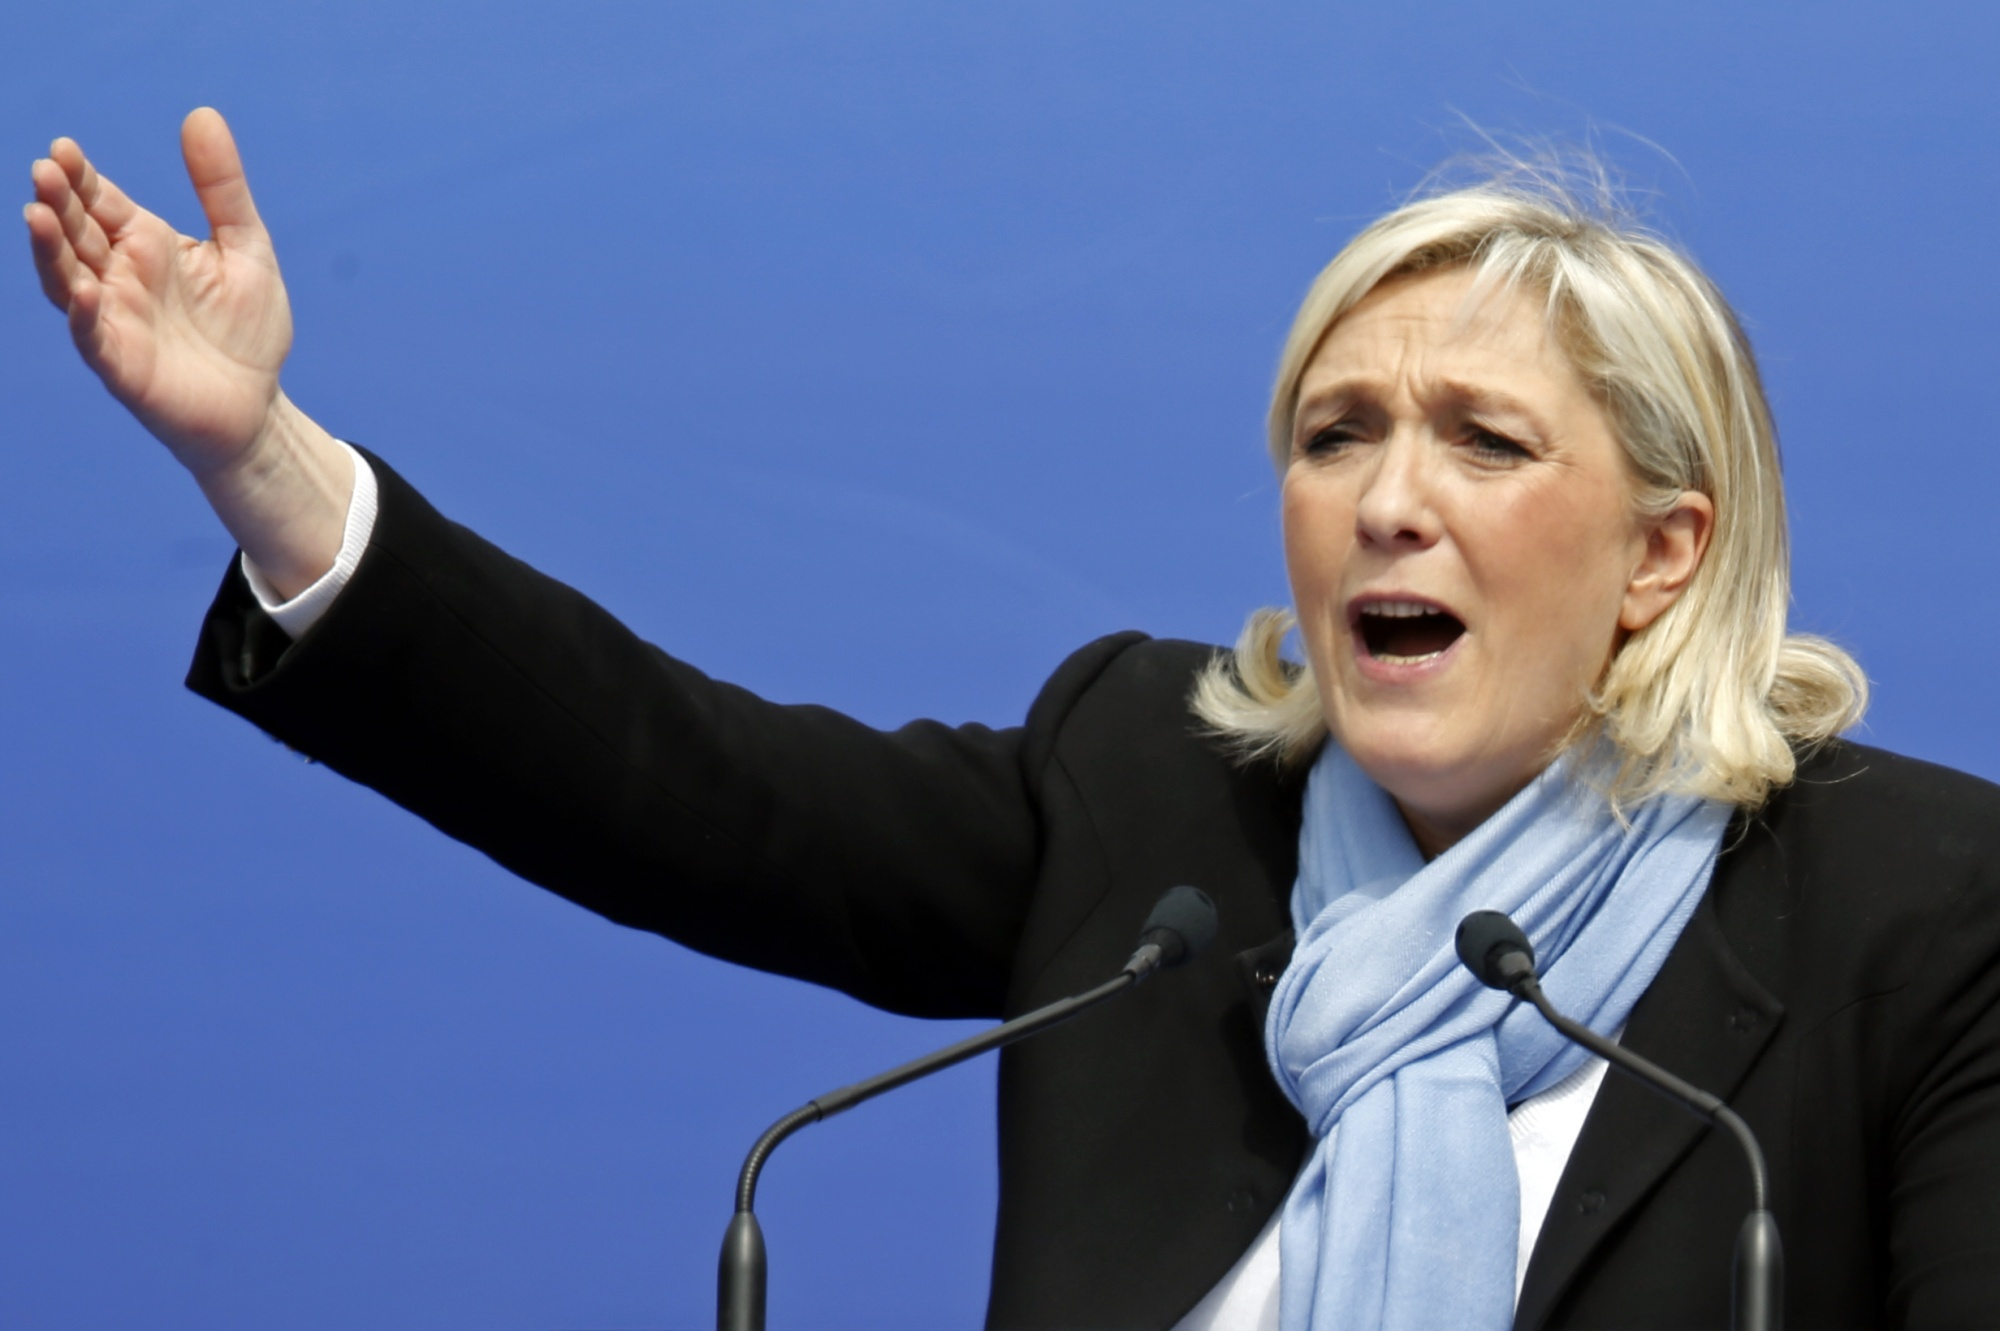 Marine Le Pen wants France to cut ties with most of the world—except Africa